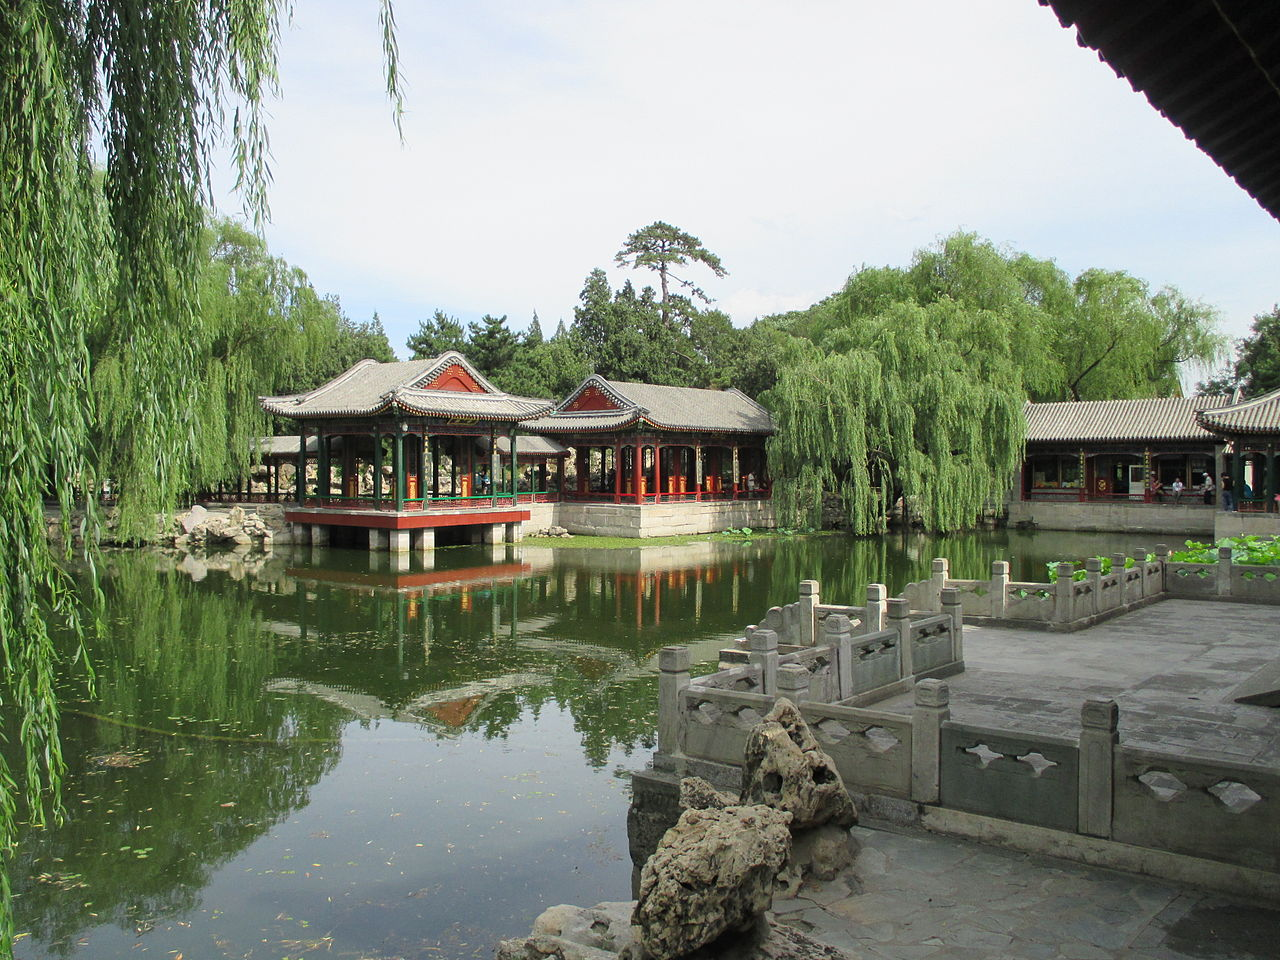 The Garden of Harmonious Pleasures in the Summer Palace, Beijing, China